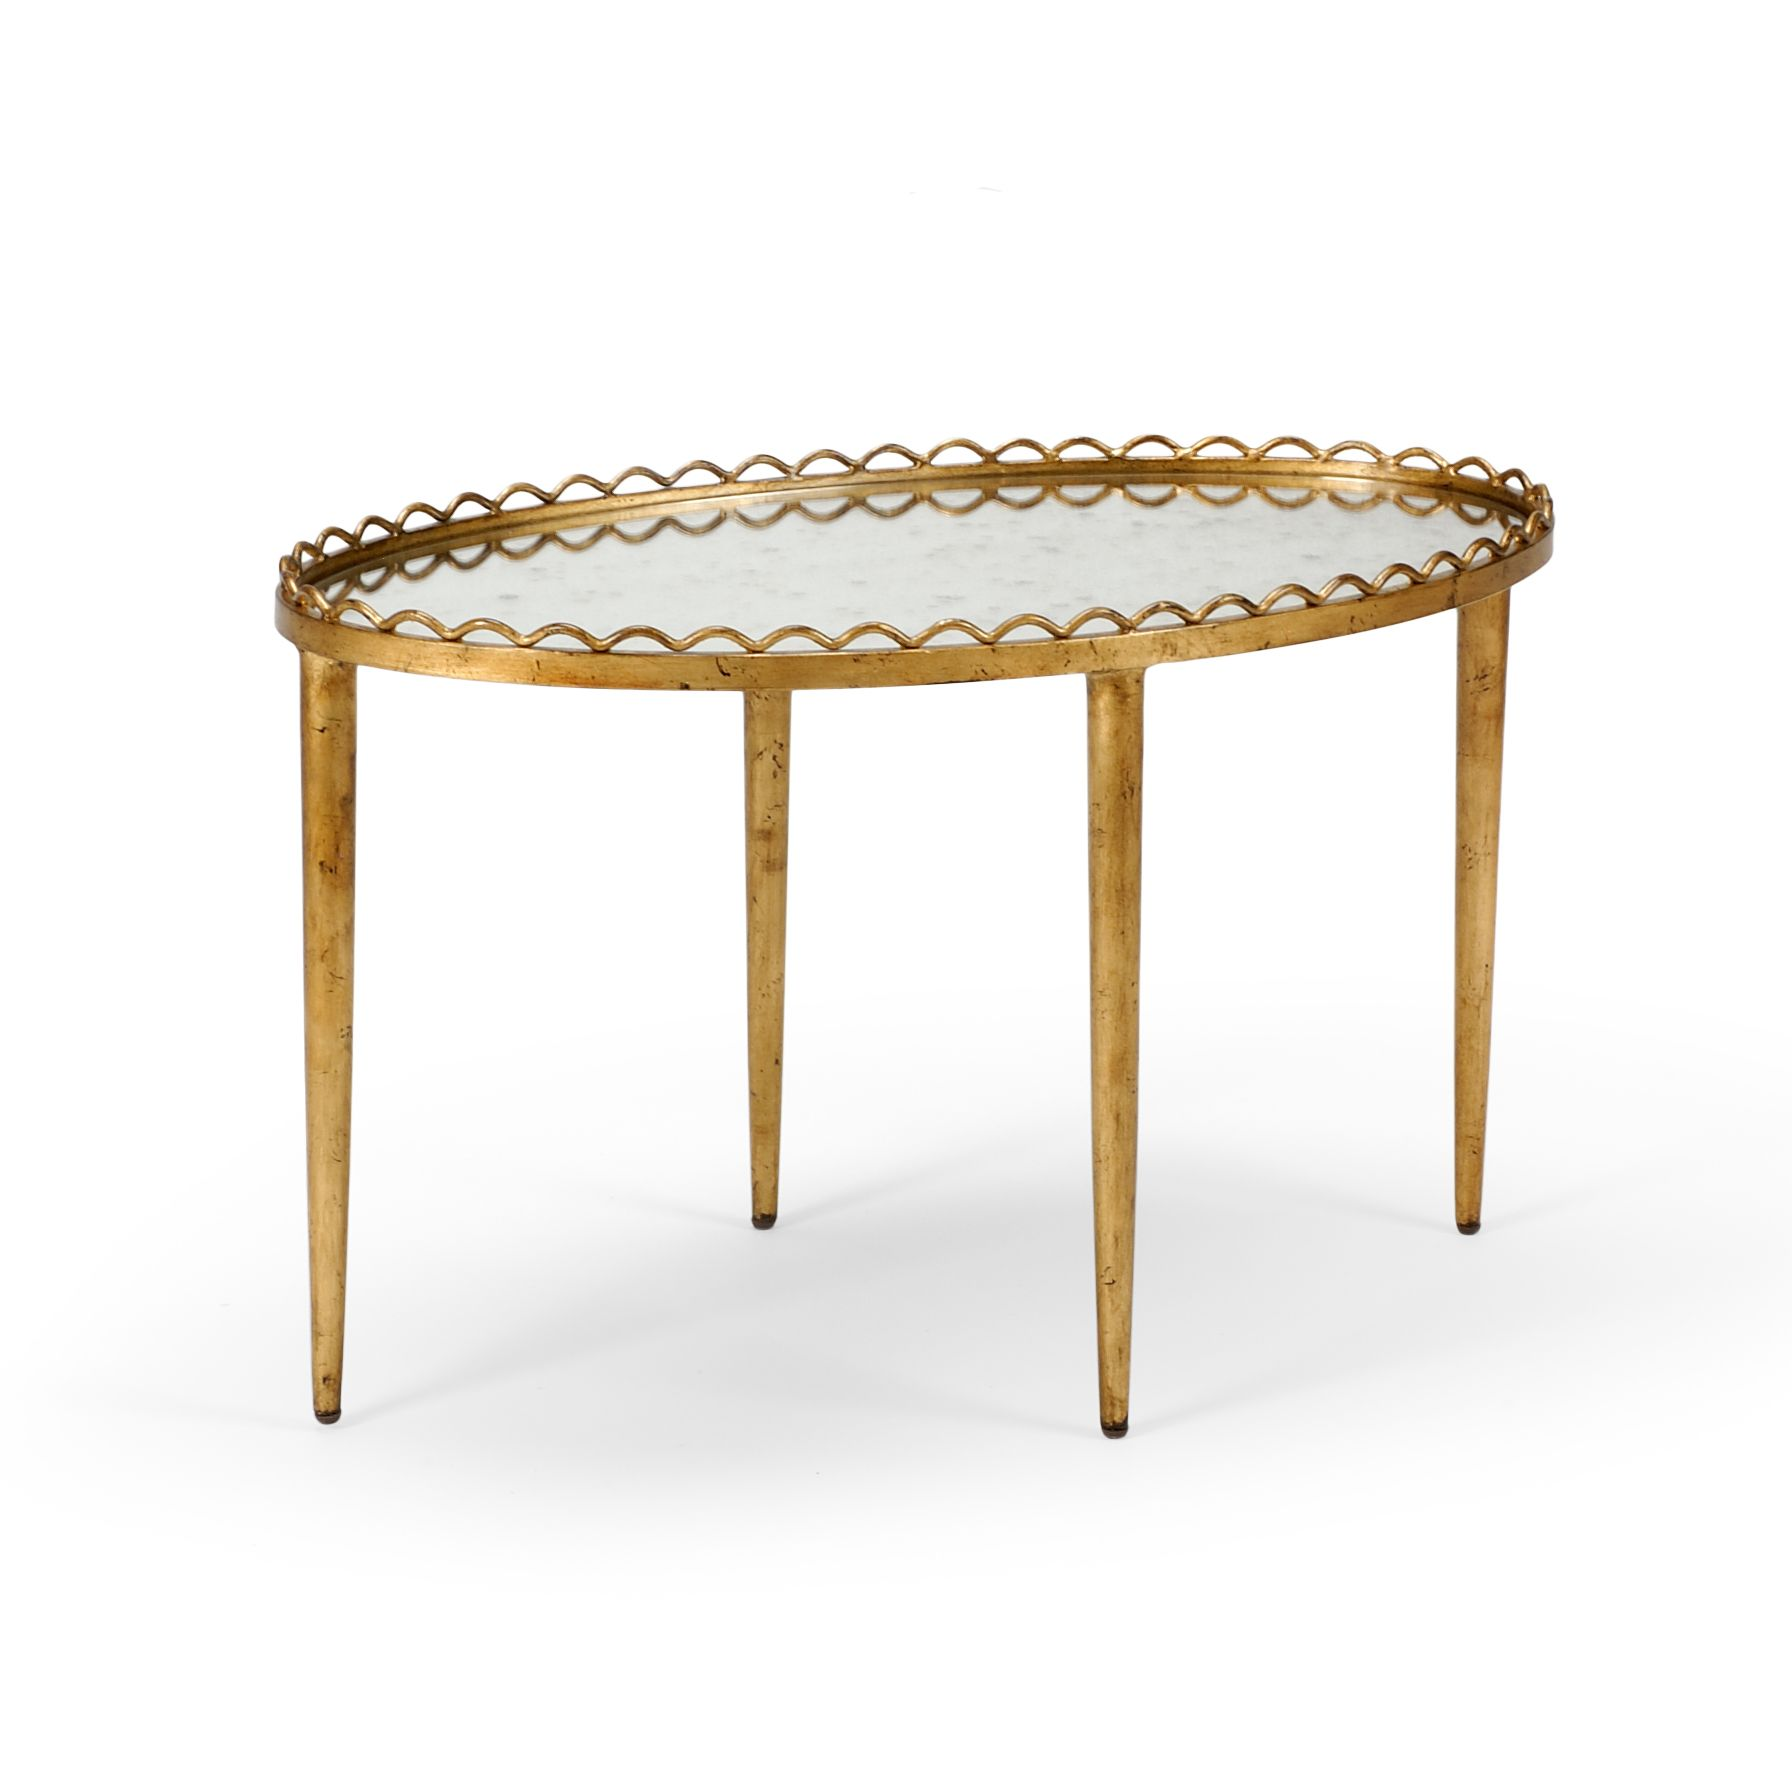 Iron Cocktail Table With A Gold Leaf Finish And Mirror Top On Backorder Call For Availability Coffee Table Coffee Table Furniture Table [ 1792 x 1792 Pixel ]